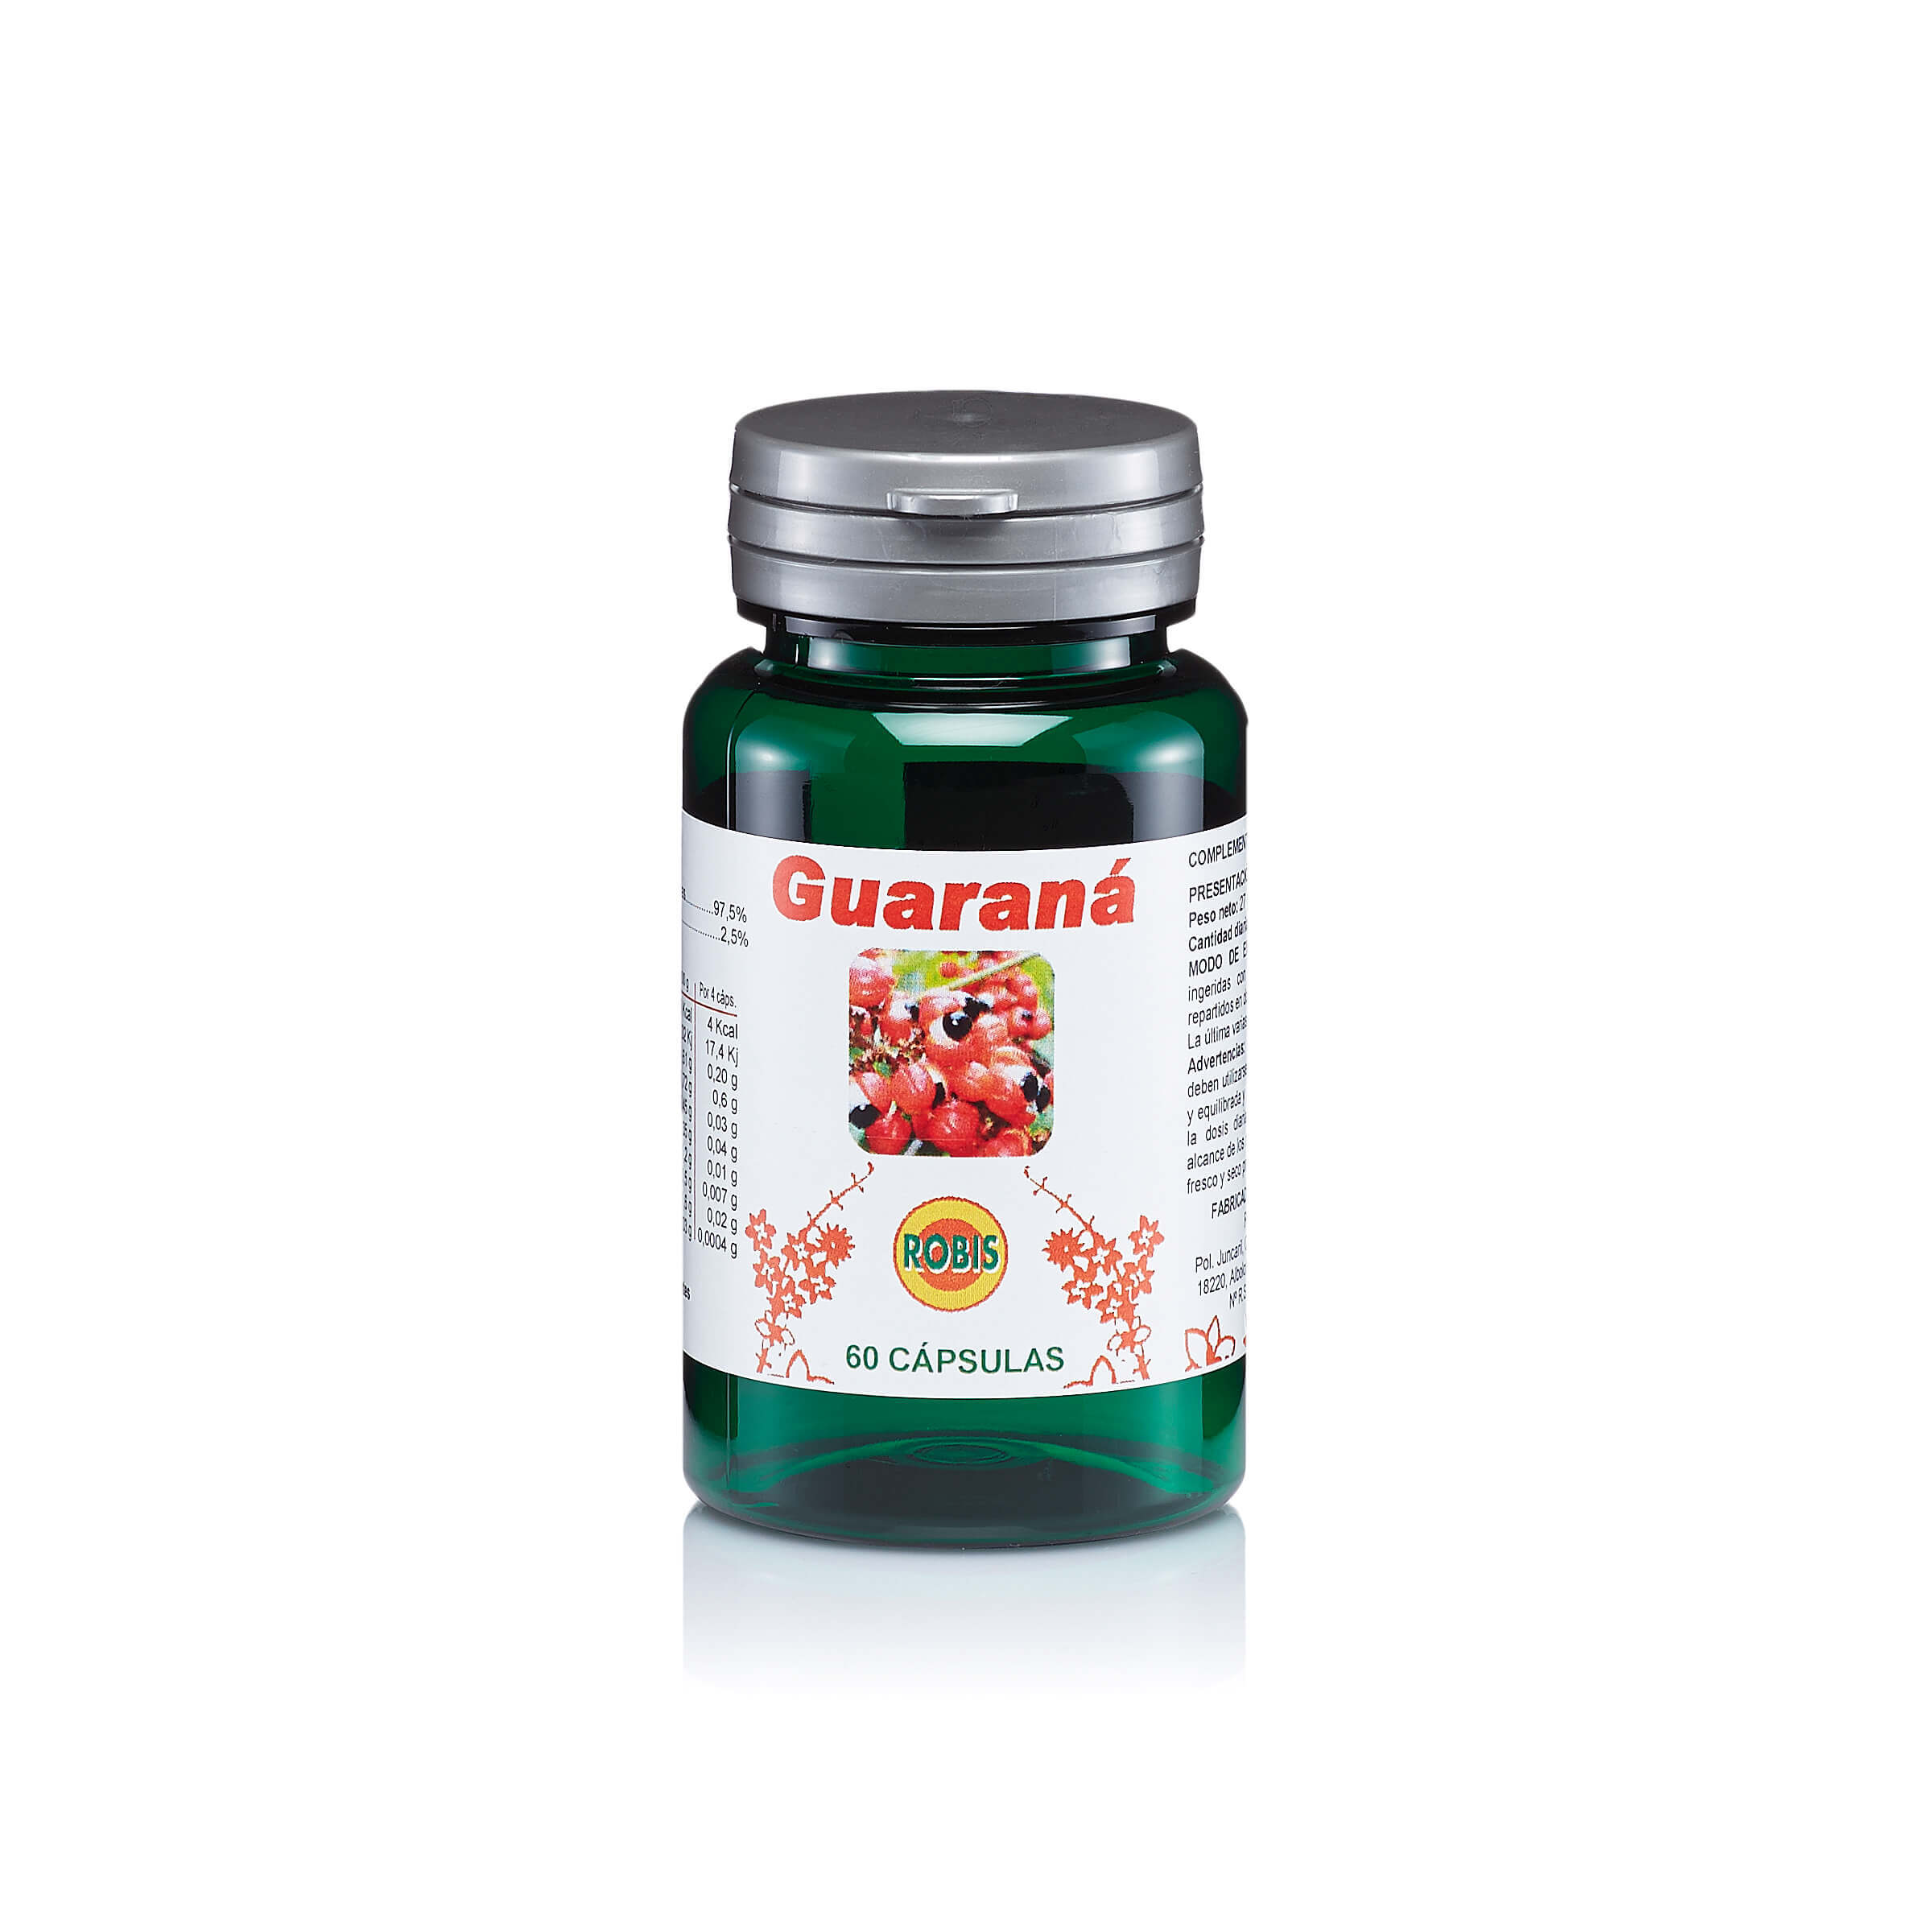 GUARANA ROBIS 50 CAPSULAS 450MG